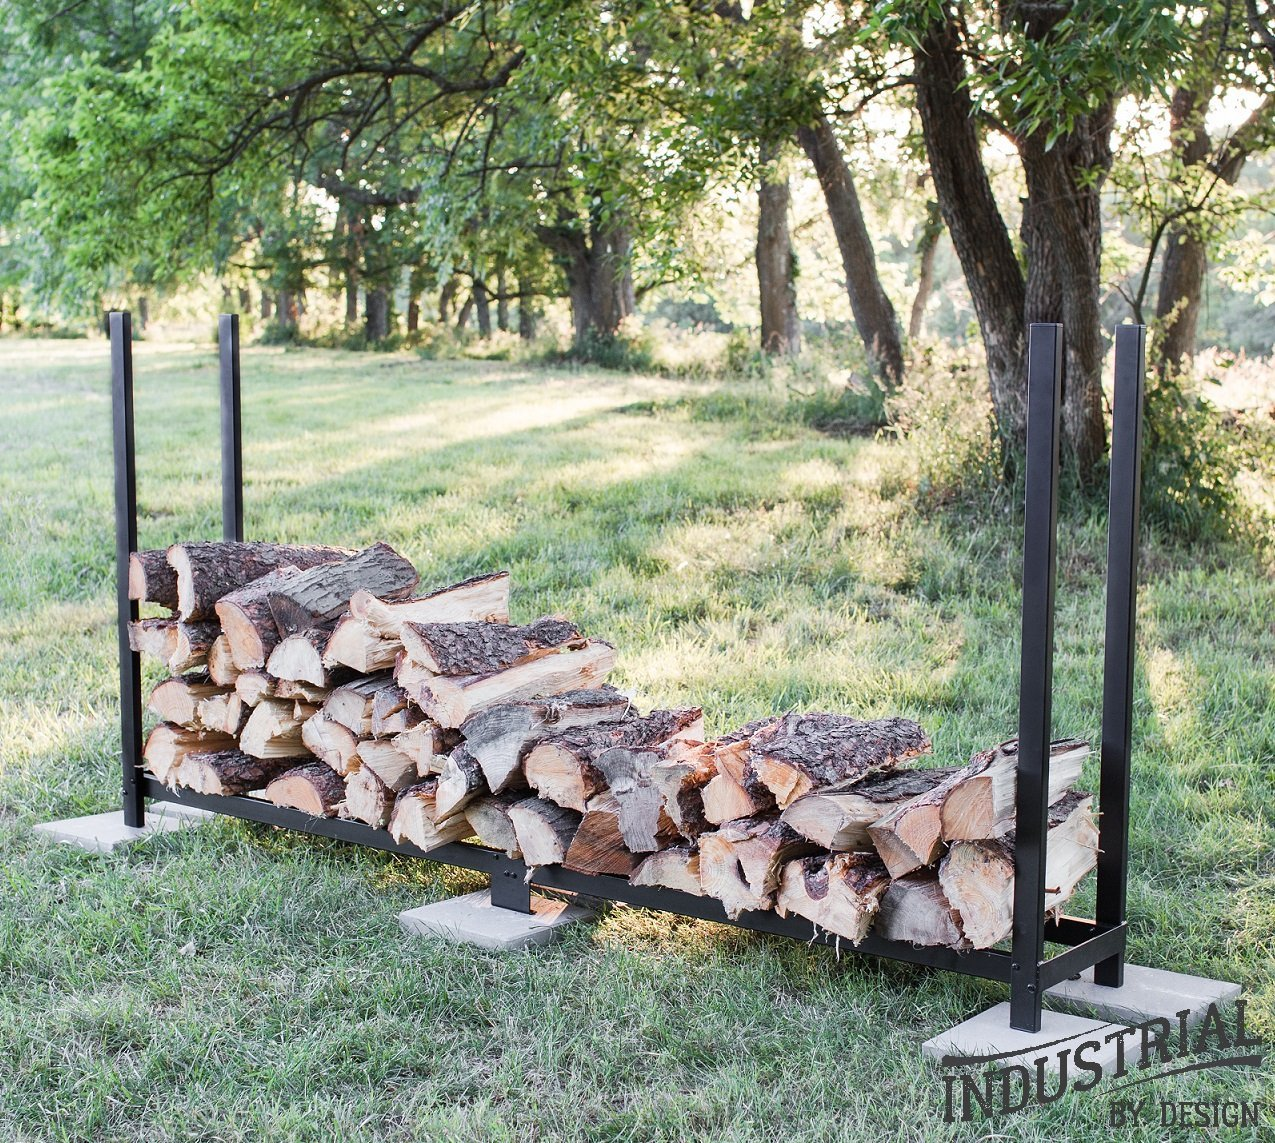 4-Foot Heavy Duty Firewood Rack ▫ Strong Powder Coated Finish, Approved for Outdoor Storage Rack Use ▫ Arc Welded End Sections ▫ Protective Soft Rubber Top Caps ▫ Easy Step-By-Step Assembly Industrial By Design IBD.4.LOGRACK